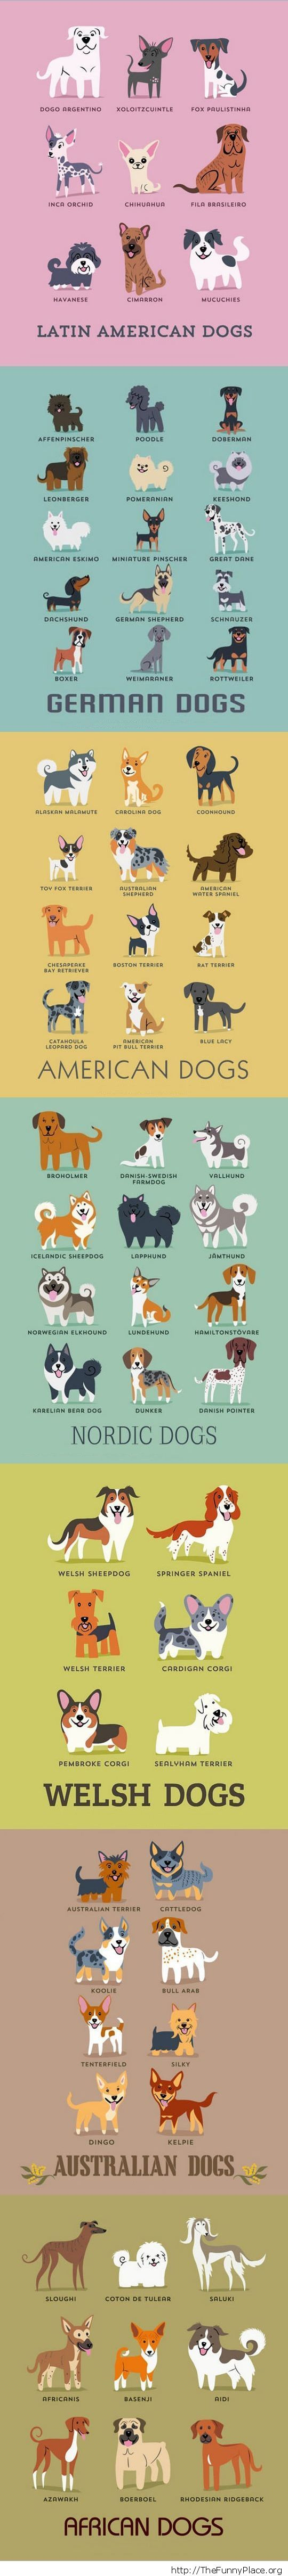 All the dog breeds